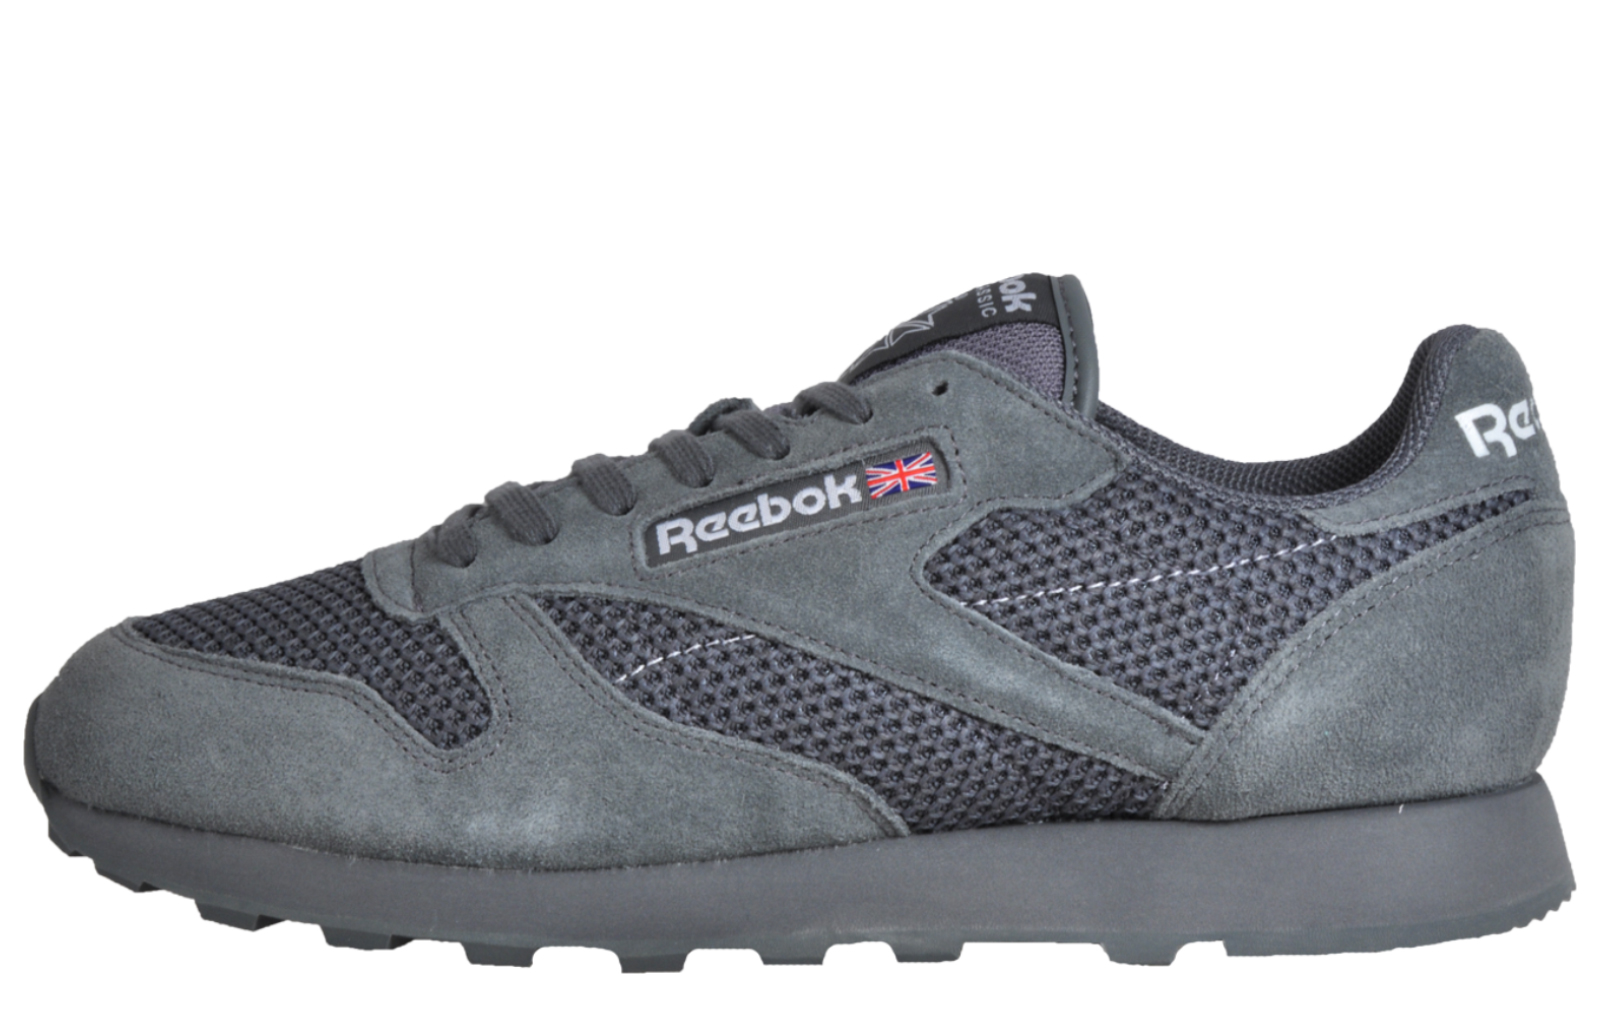 Reebok Classic CL Leather Knit - RE163097